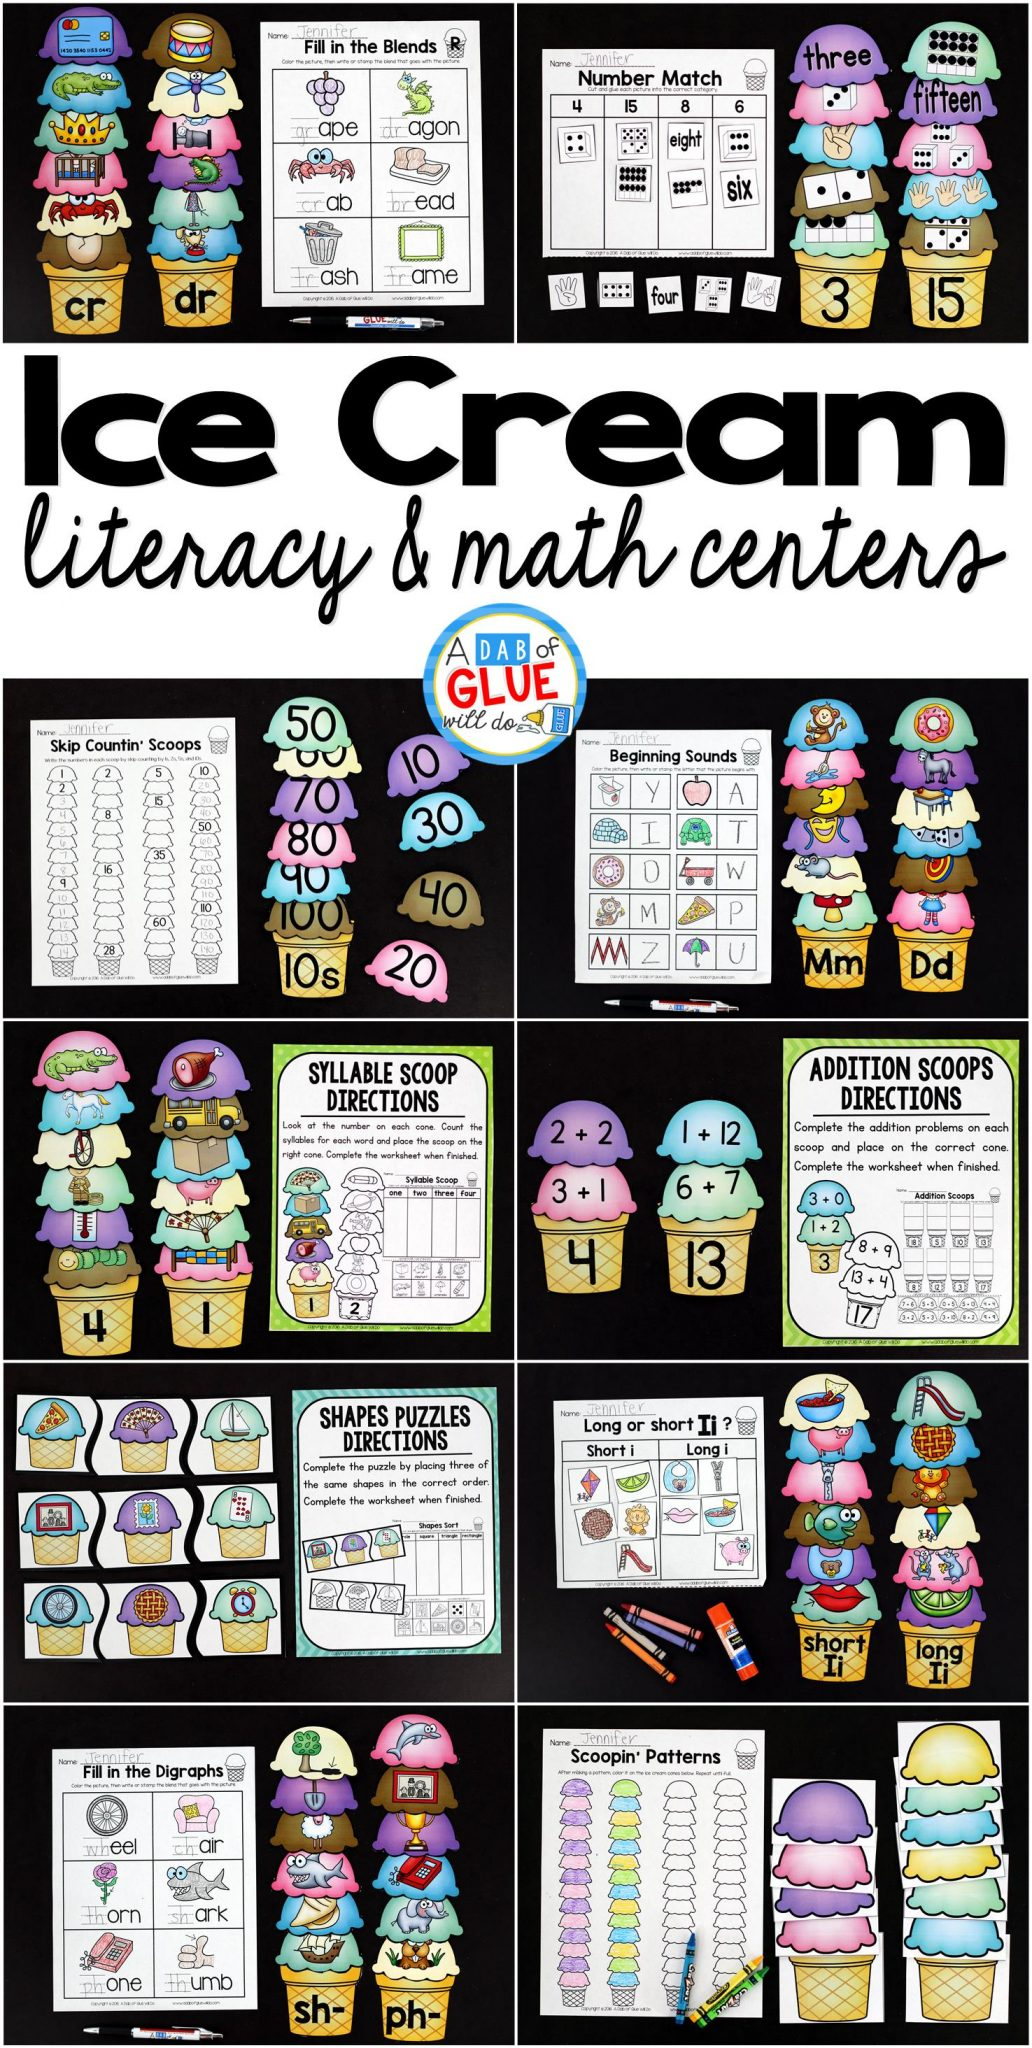 Make language arts and math fun with this themed Ice Cream Literacy and Math Centers bundle that is perfect for your lower elementary aged children. Use these fun language arts summer themed worksheets to review with your Preschool, Kindergarten, and First Grade students important language arts and math concepts in a fun and interactive way. All centers come in colors AND black and white.